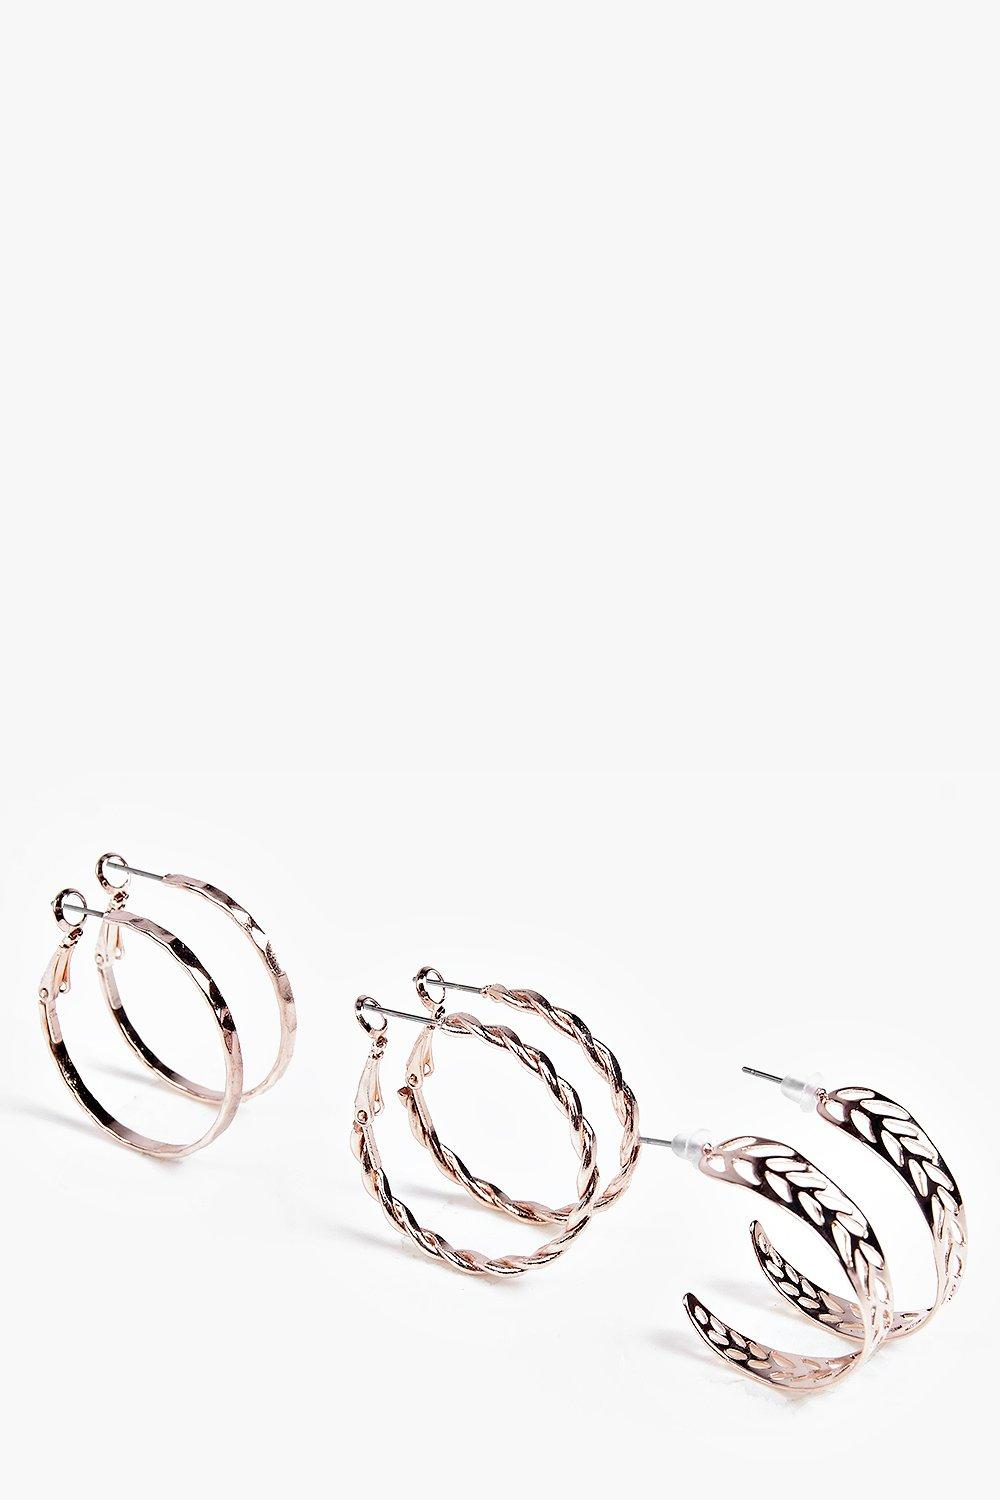 Eva Rose gold Ornate Hoop Earring 3 Pack